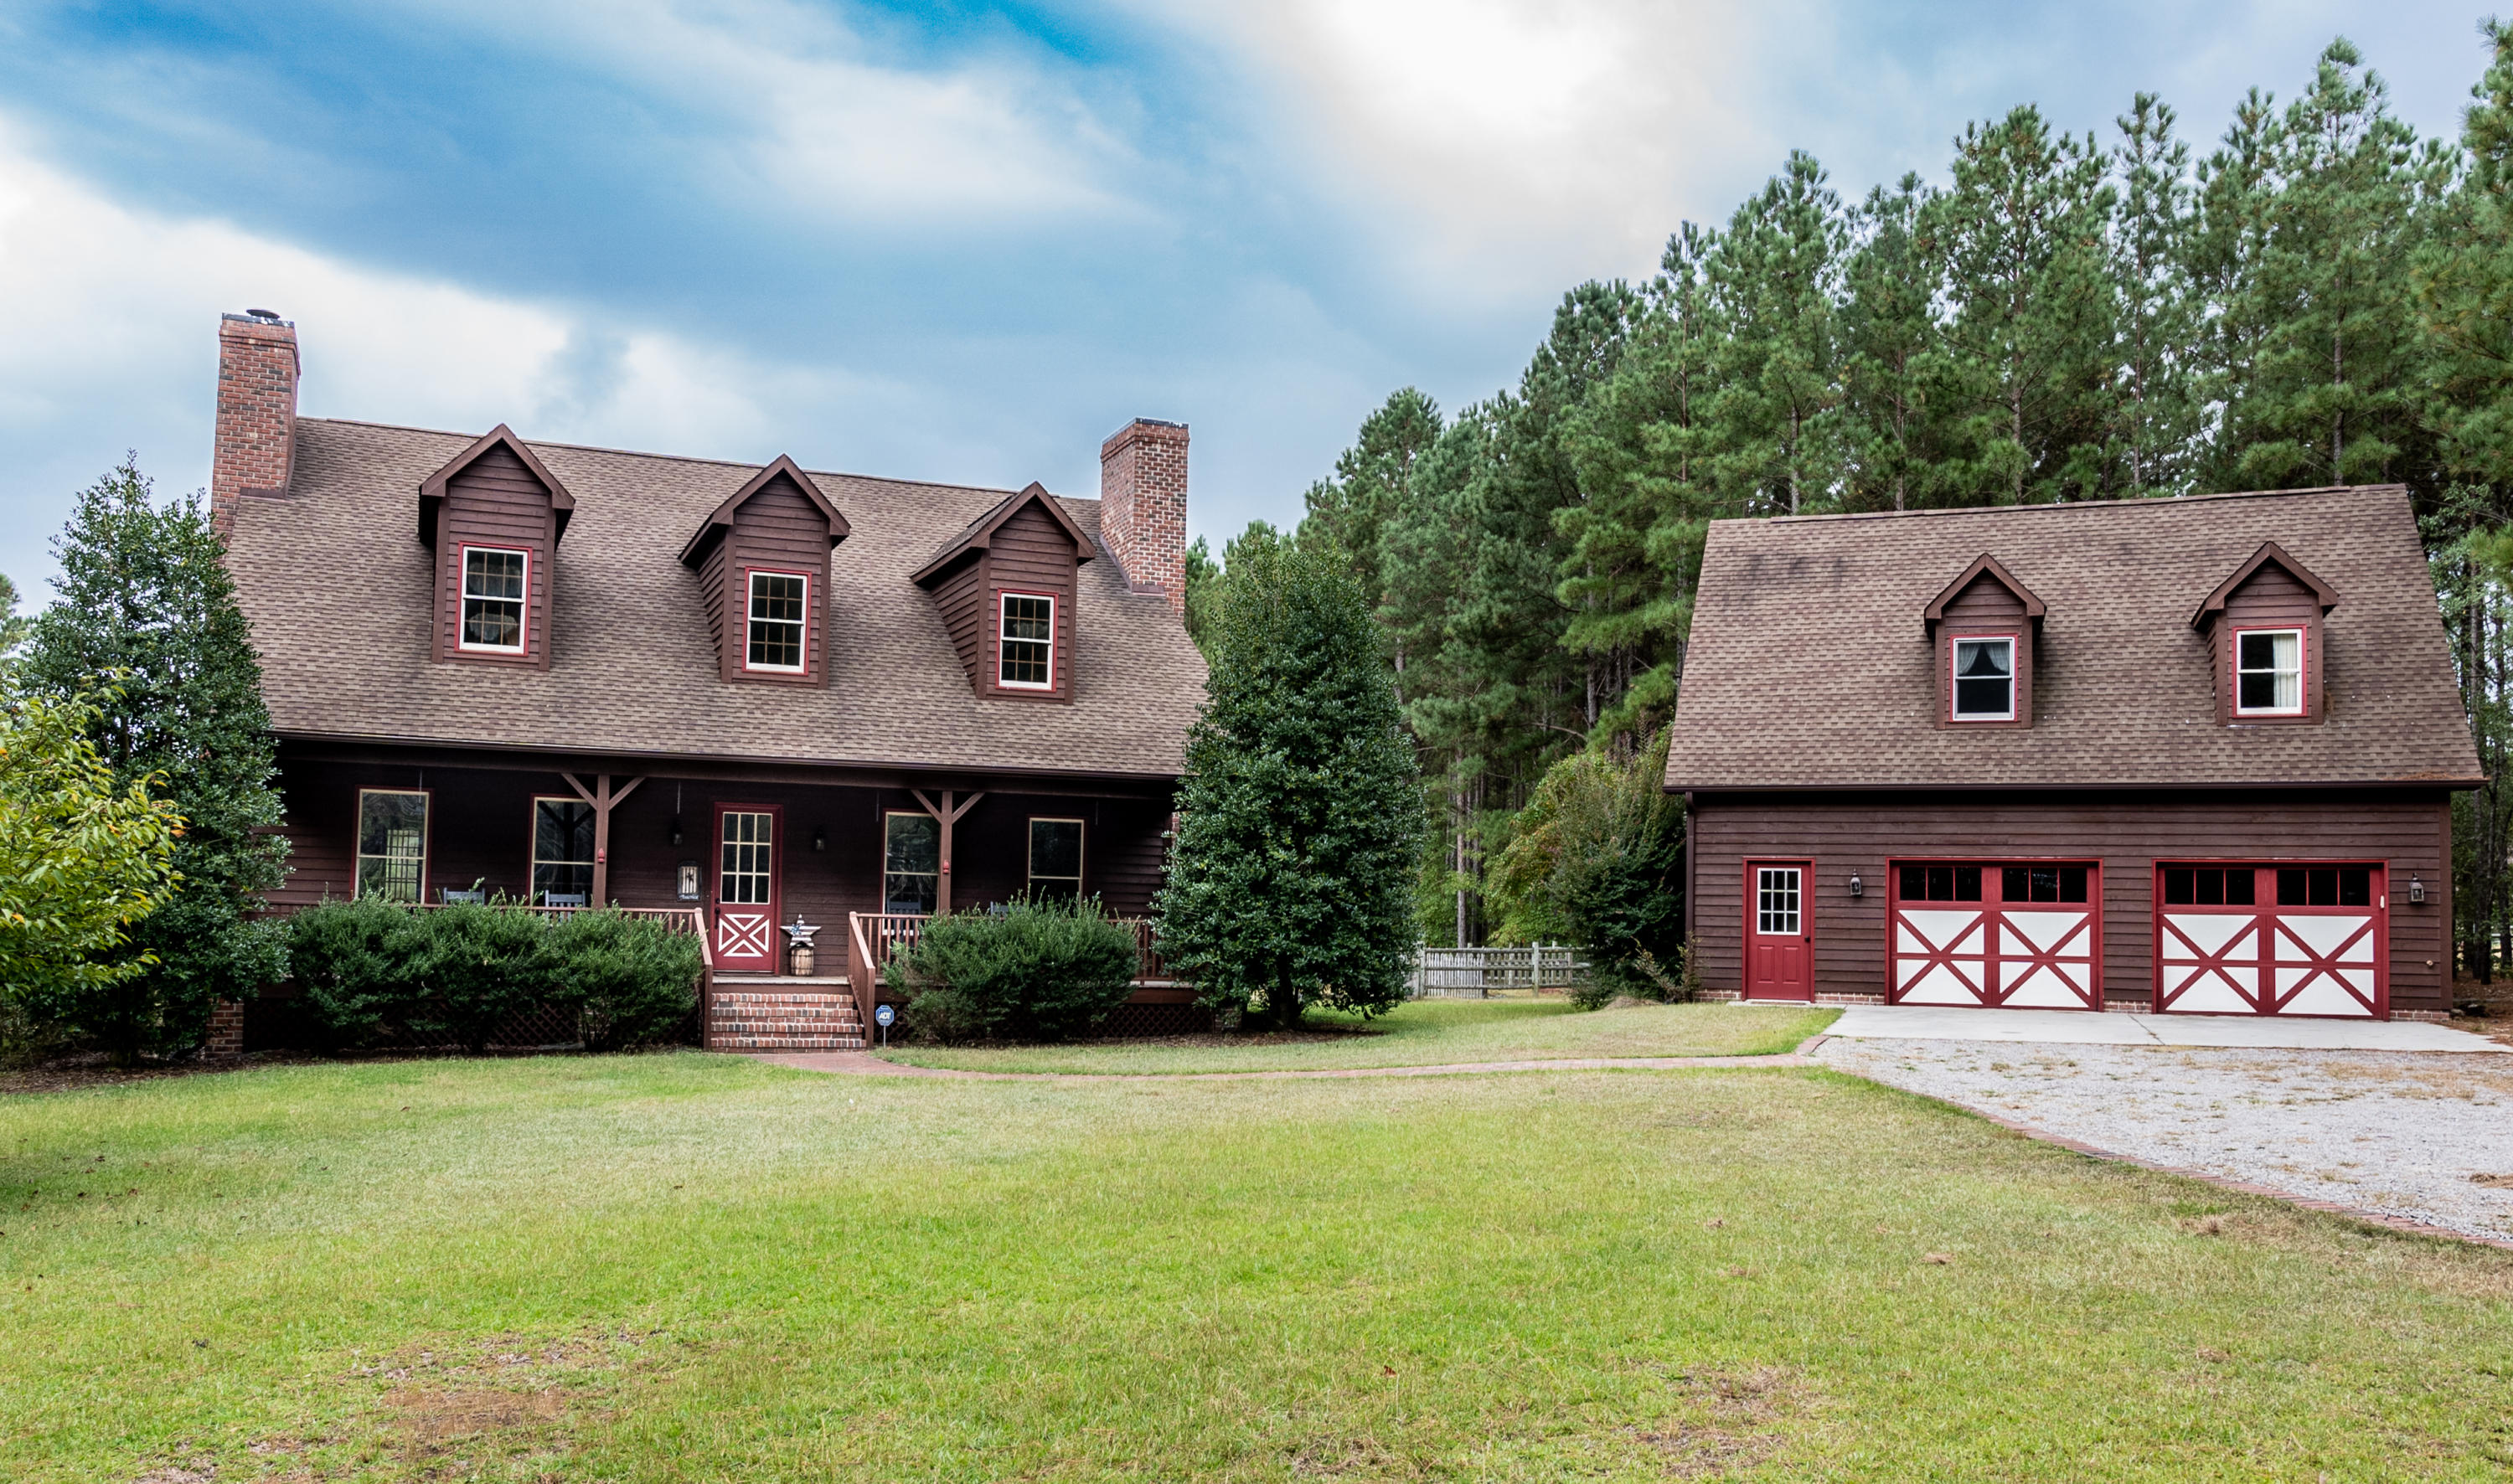 1250  Pasture Circle, Aberdeen in Hoke County, NC 28315 Home for Sale